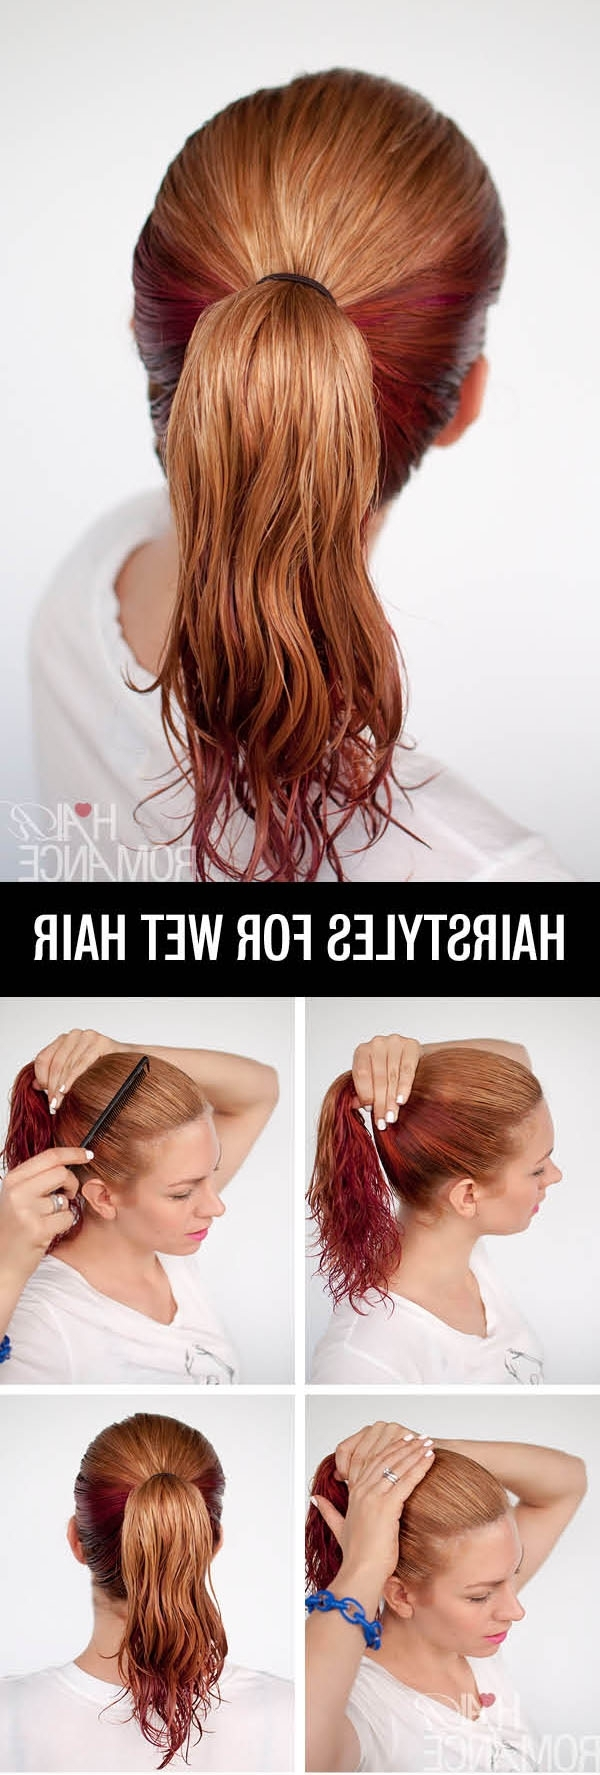 Get Ready Fast With 7 Easy Hairstyle Tutorials For Wet Hair – Hair Regarding Trendy Dyed Simple Ponytail Hairstyles For Second Day Hair (Gallery 7 of 20)